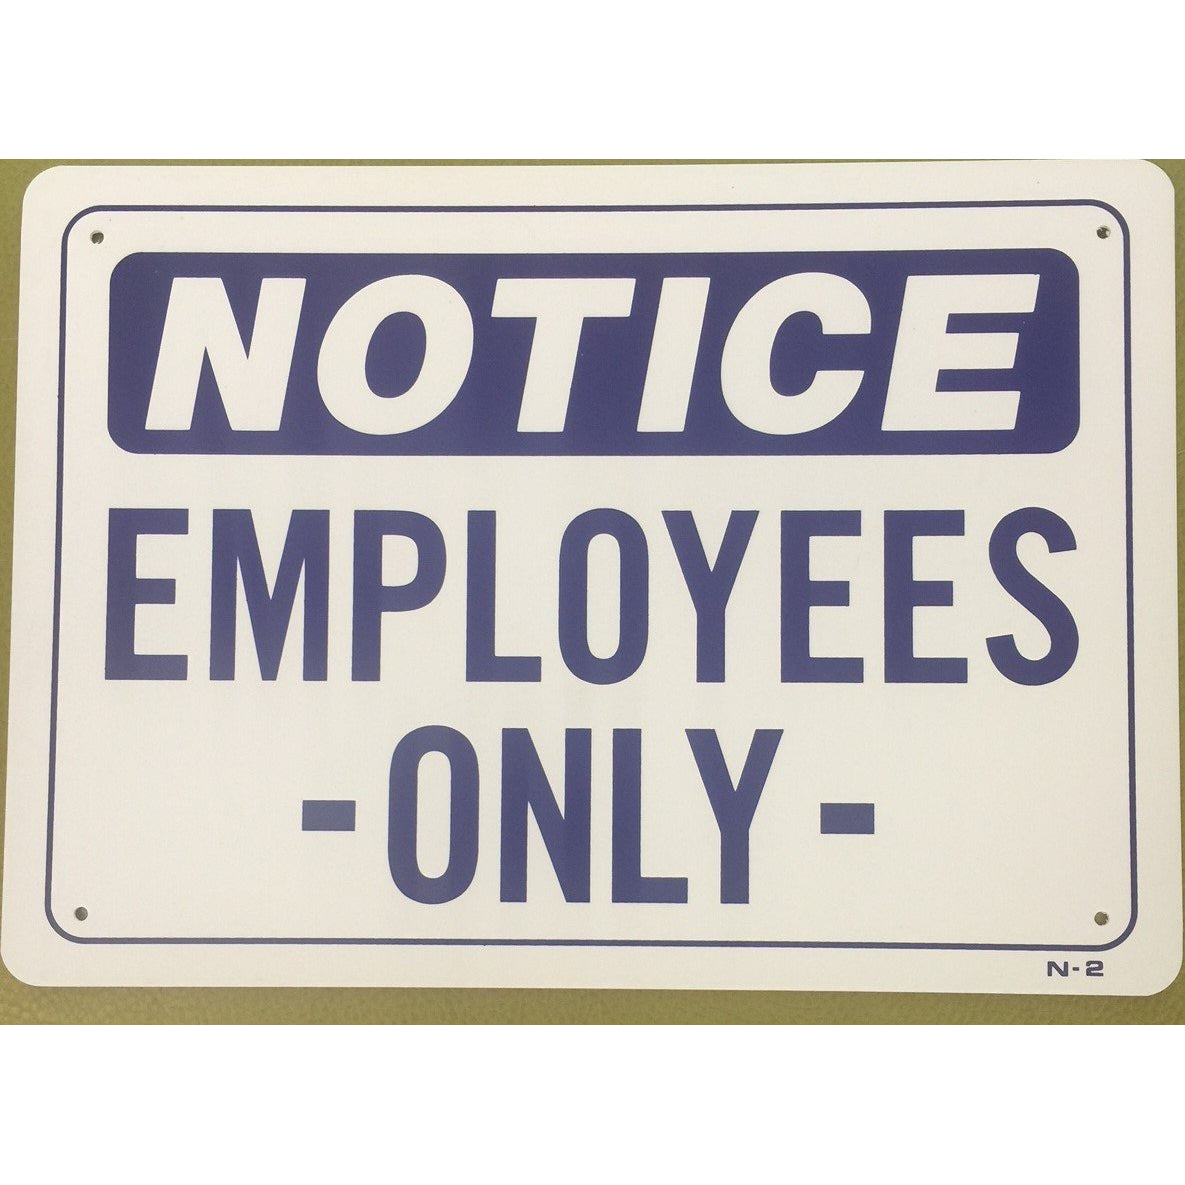 EMPLOYEES ONLY #N-2